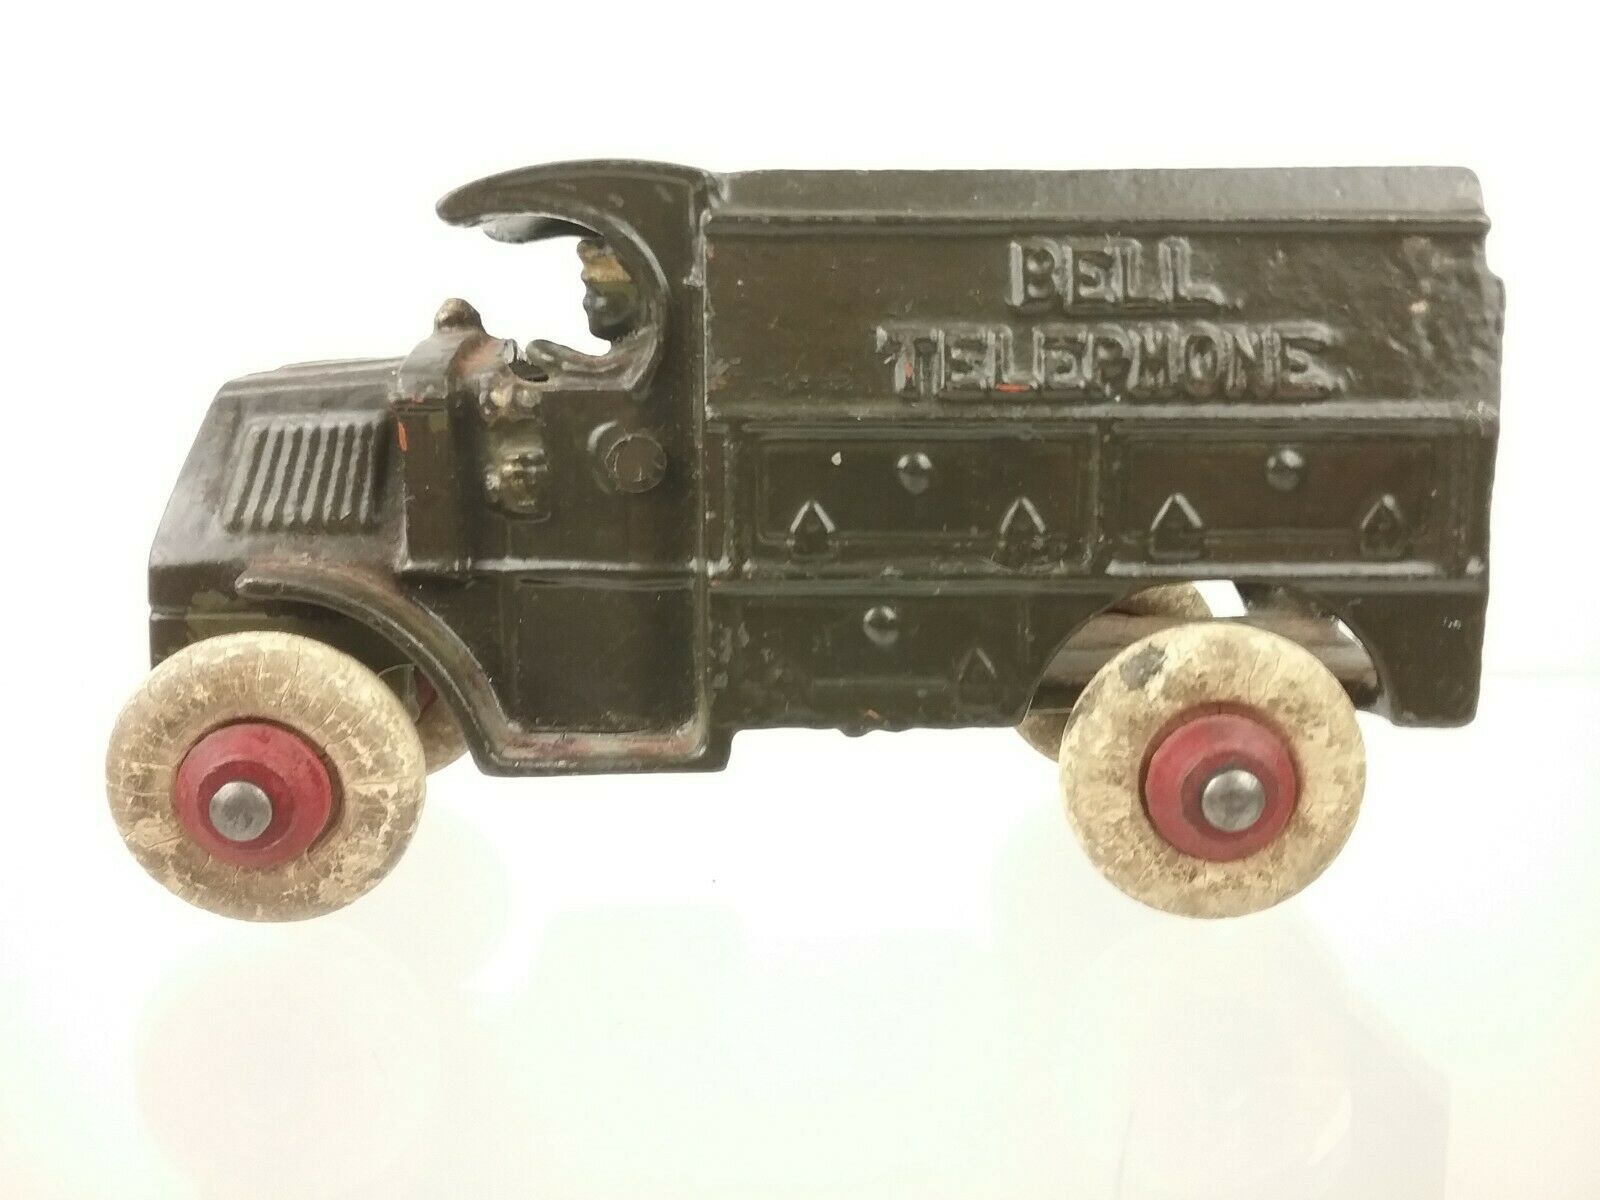 Authentic Vintage Die-cast Toy Truck - Bell Telephone Truck (Green)